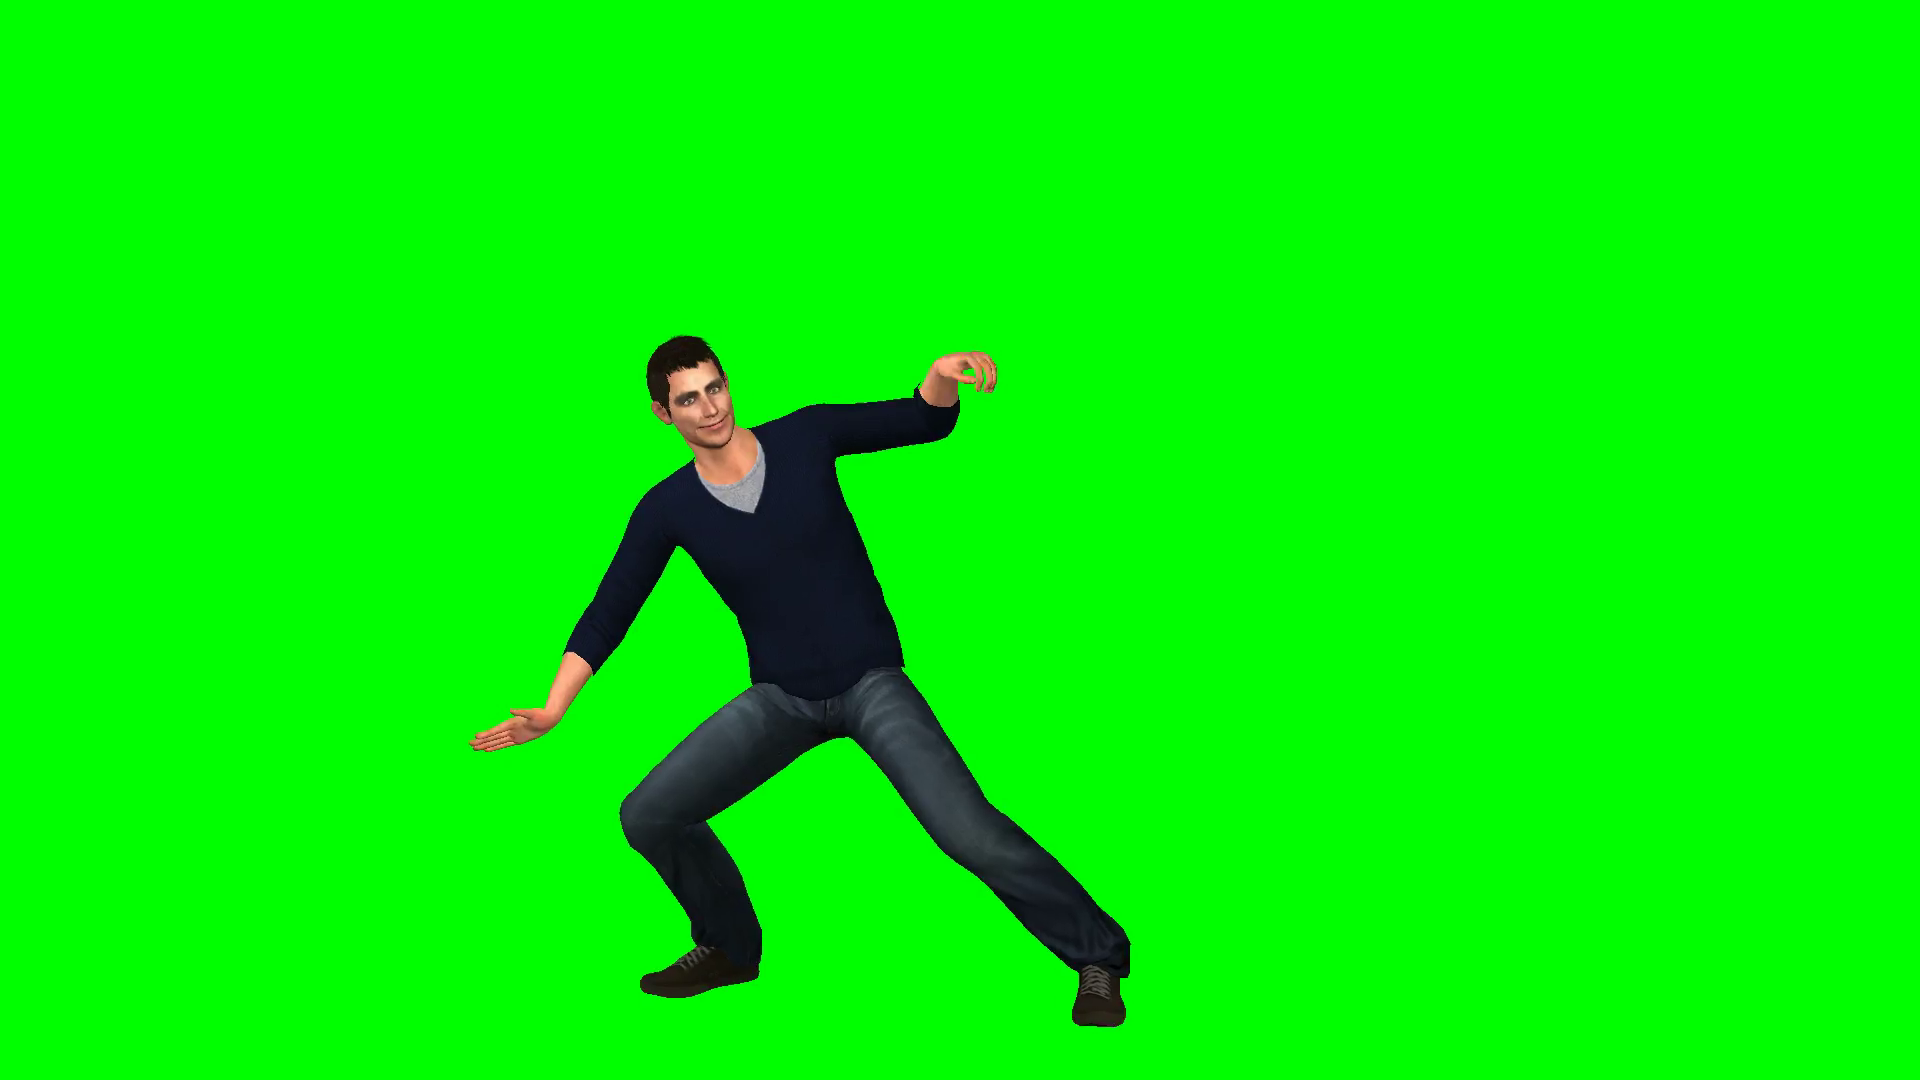 Animated Dancing PNG HD - 131069